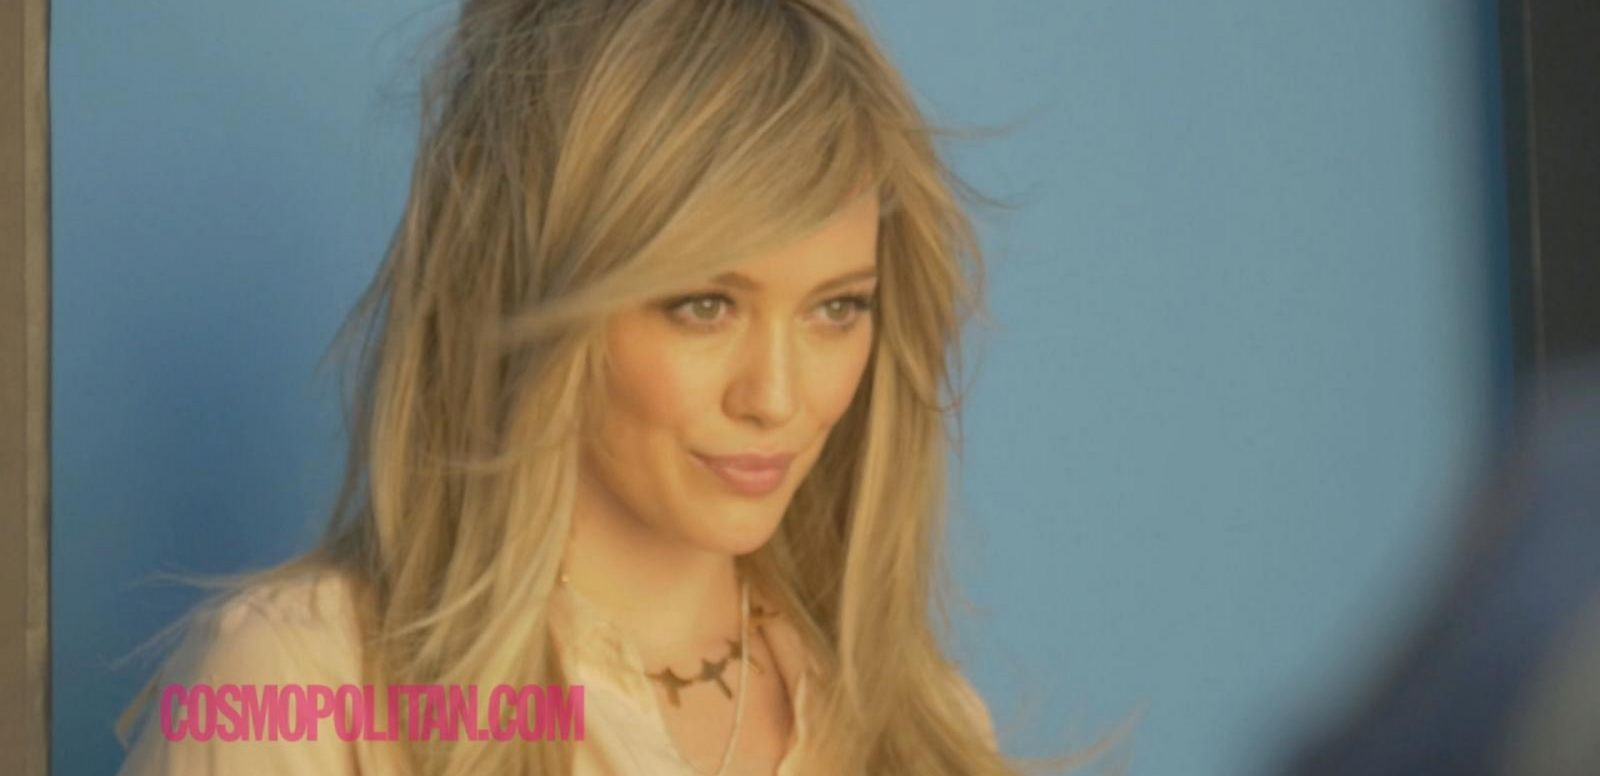 VIDEO: Hilary Duff Opens Up About Divorce, Future